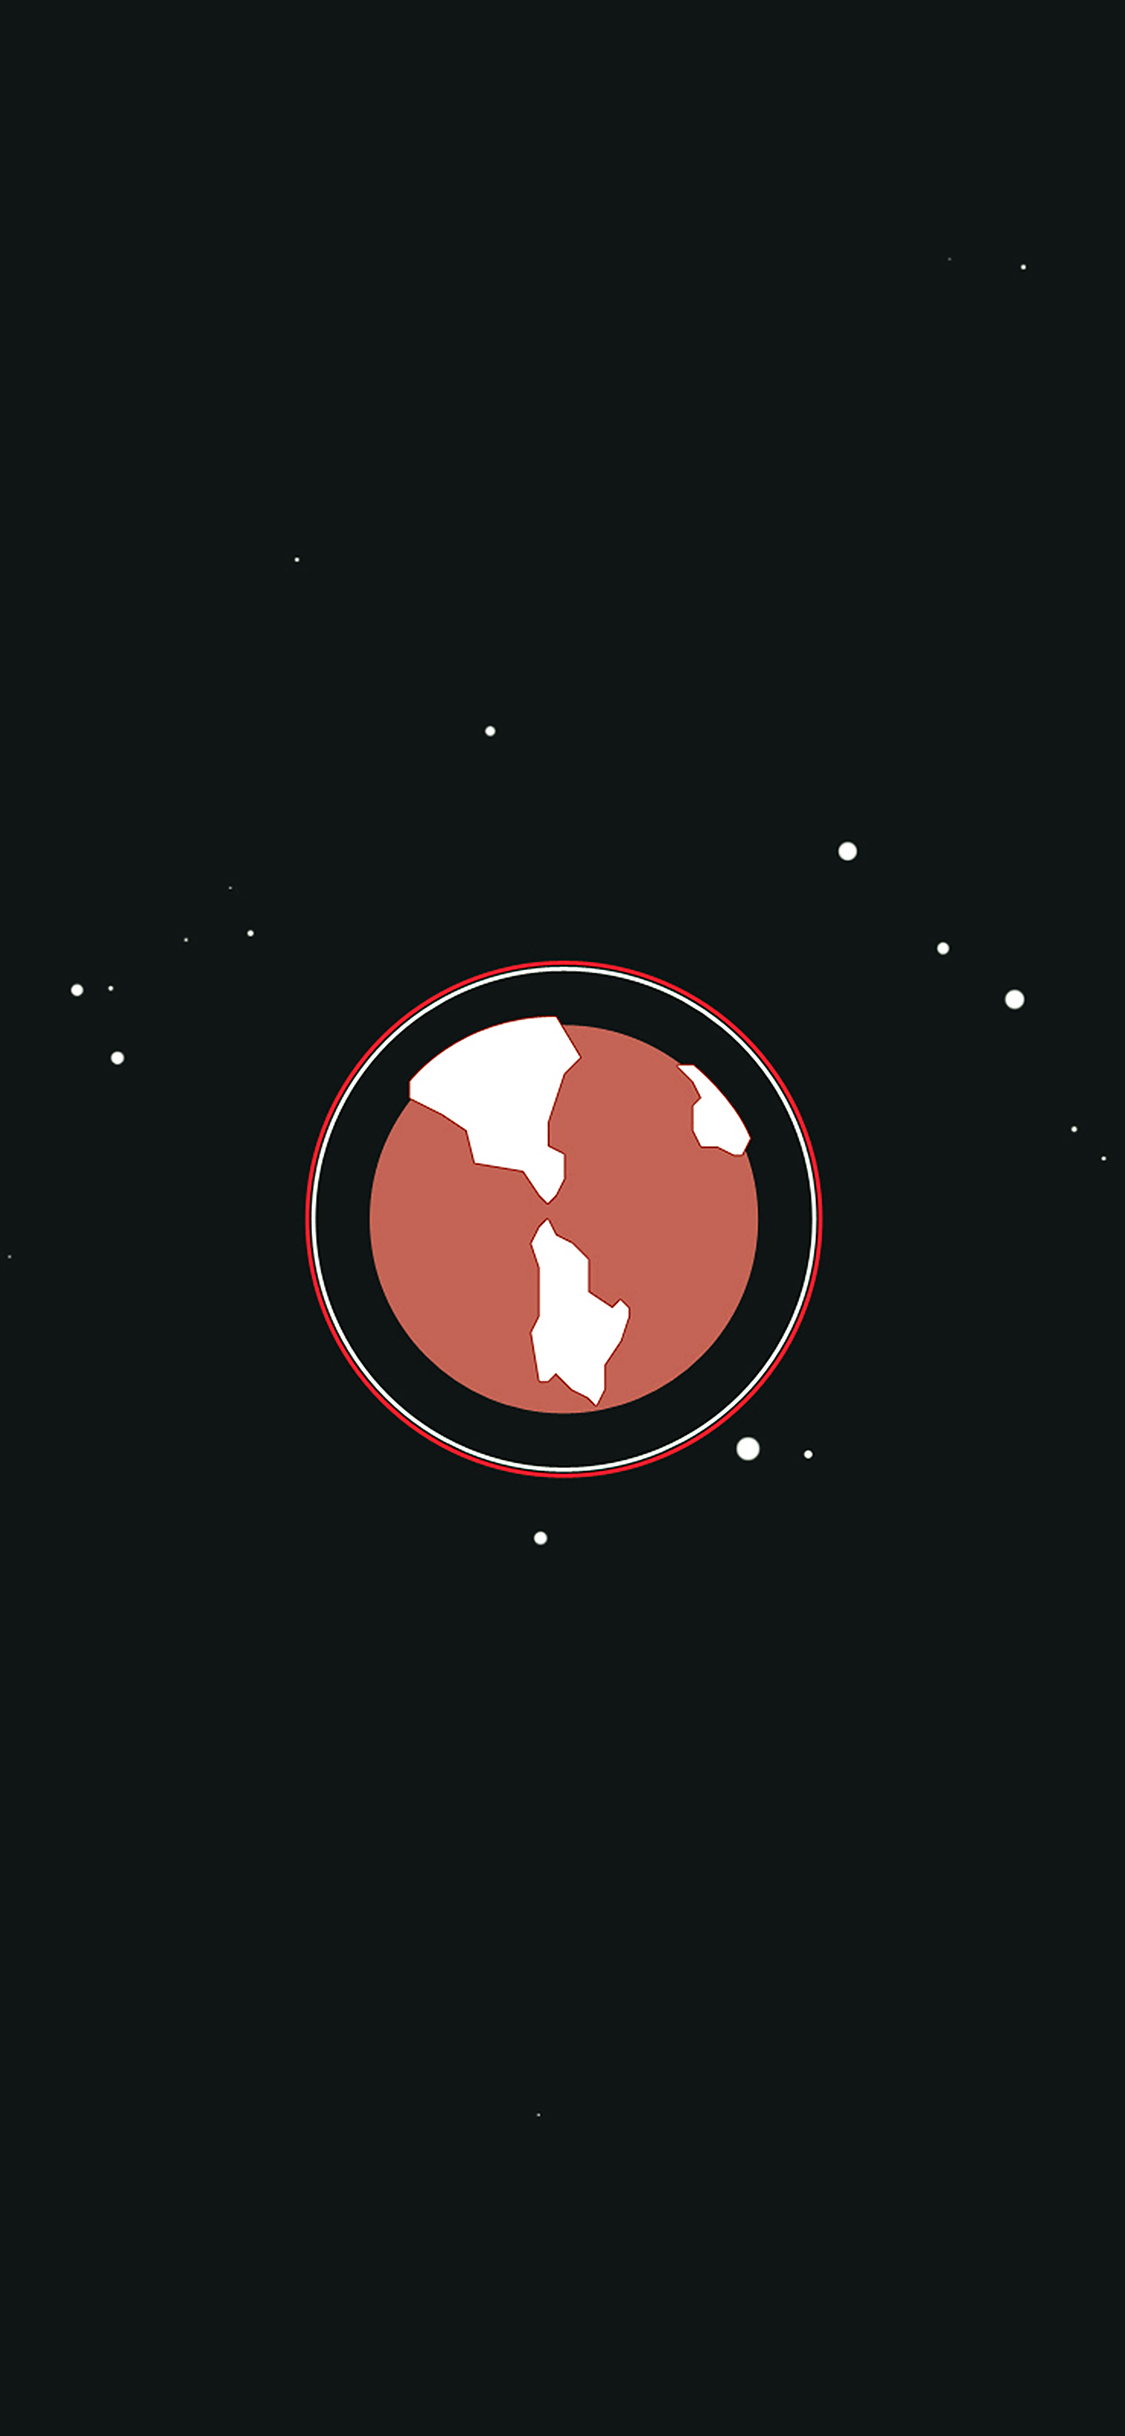 ah18-earth-red-planet-minimal-simple-illust-art - Papers.co